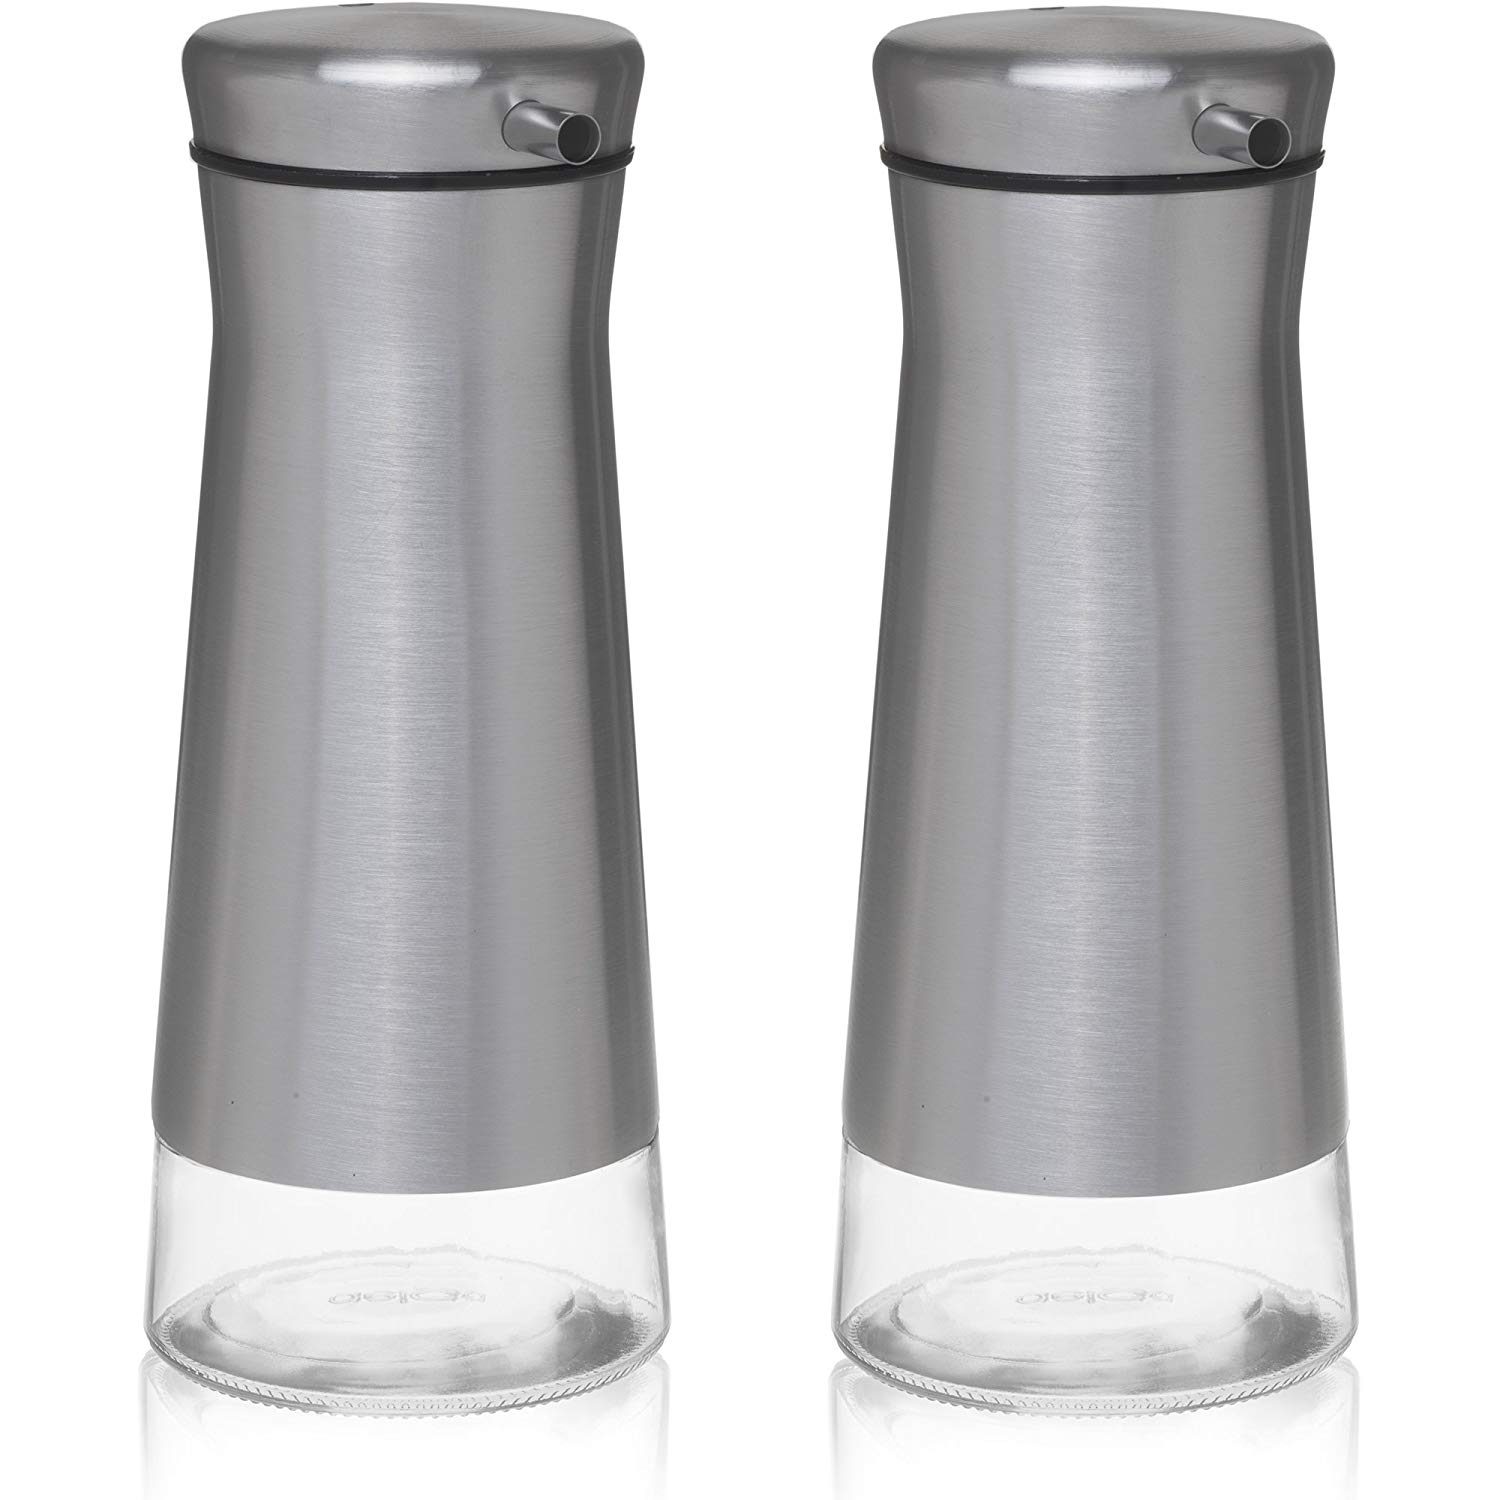 ??chefvantage olive oil & vinegar cruet dispenser set